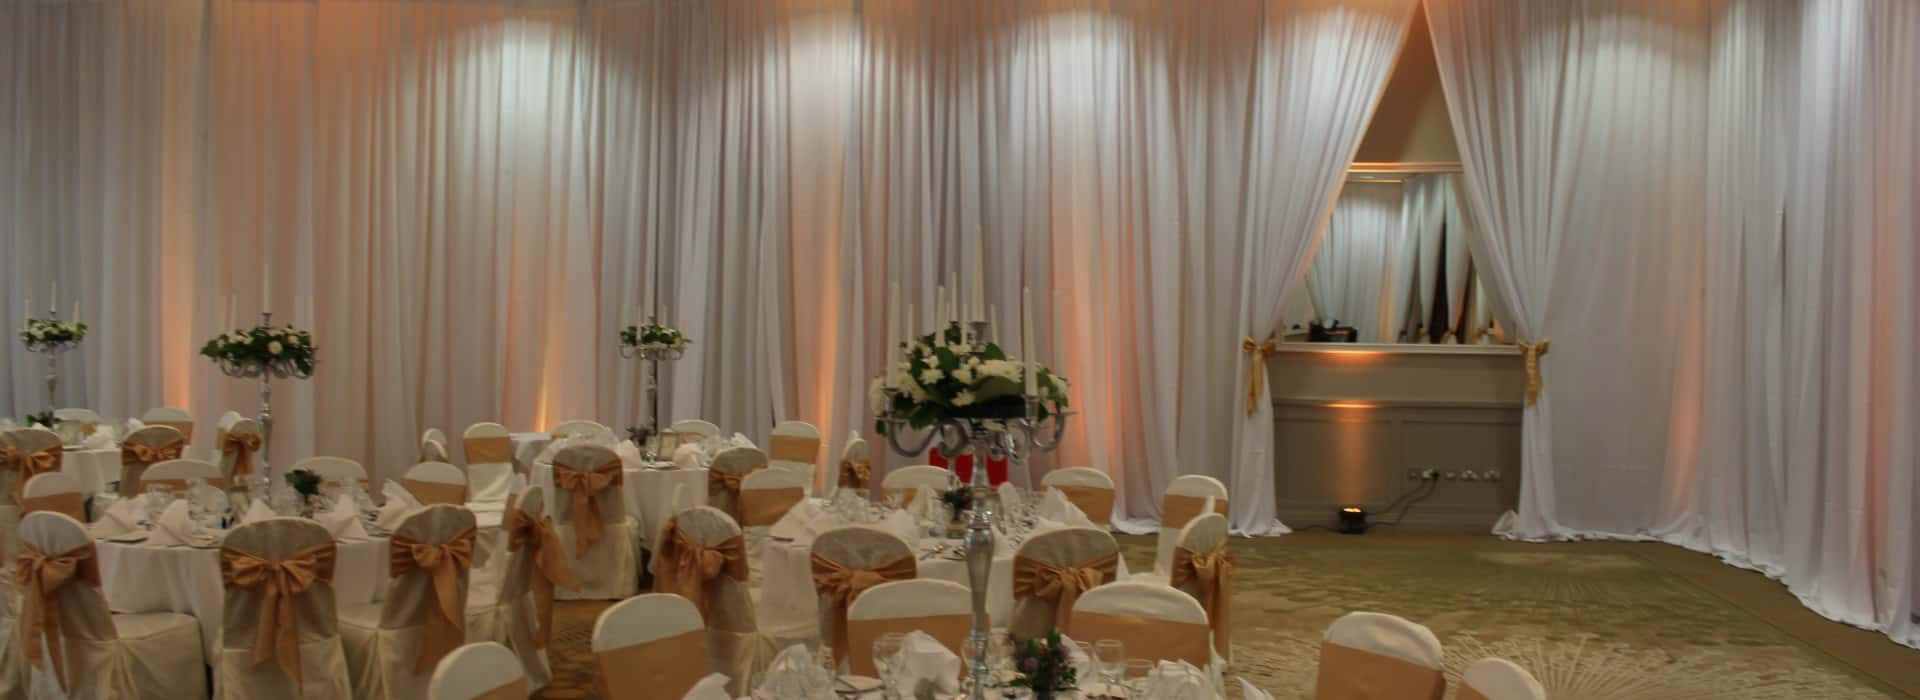 Wedding Custom Drape